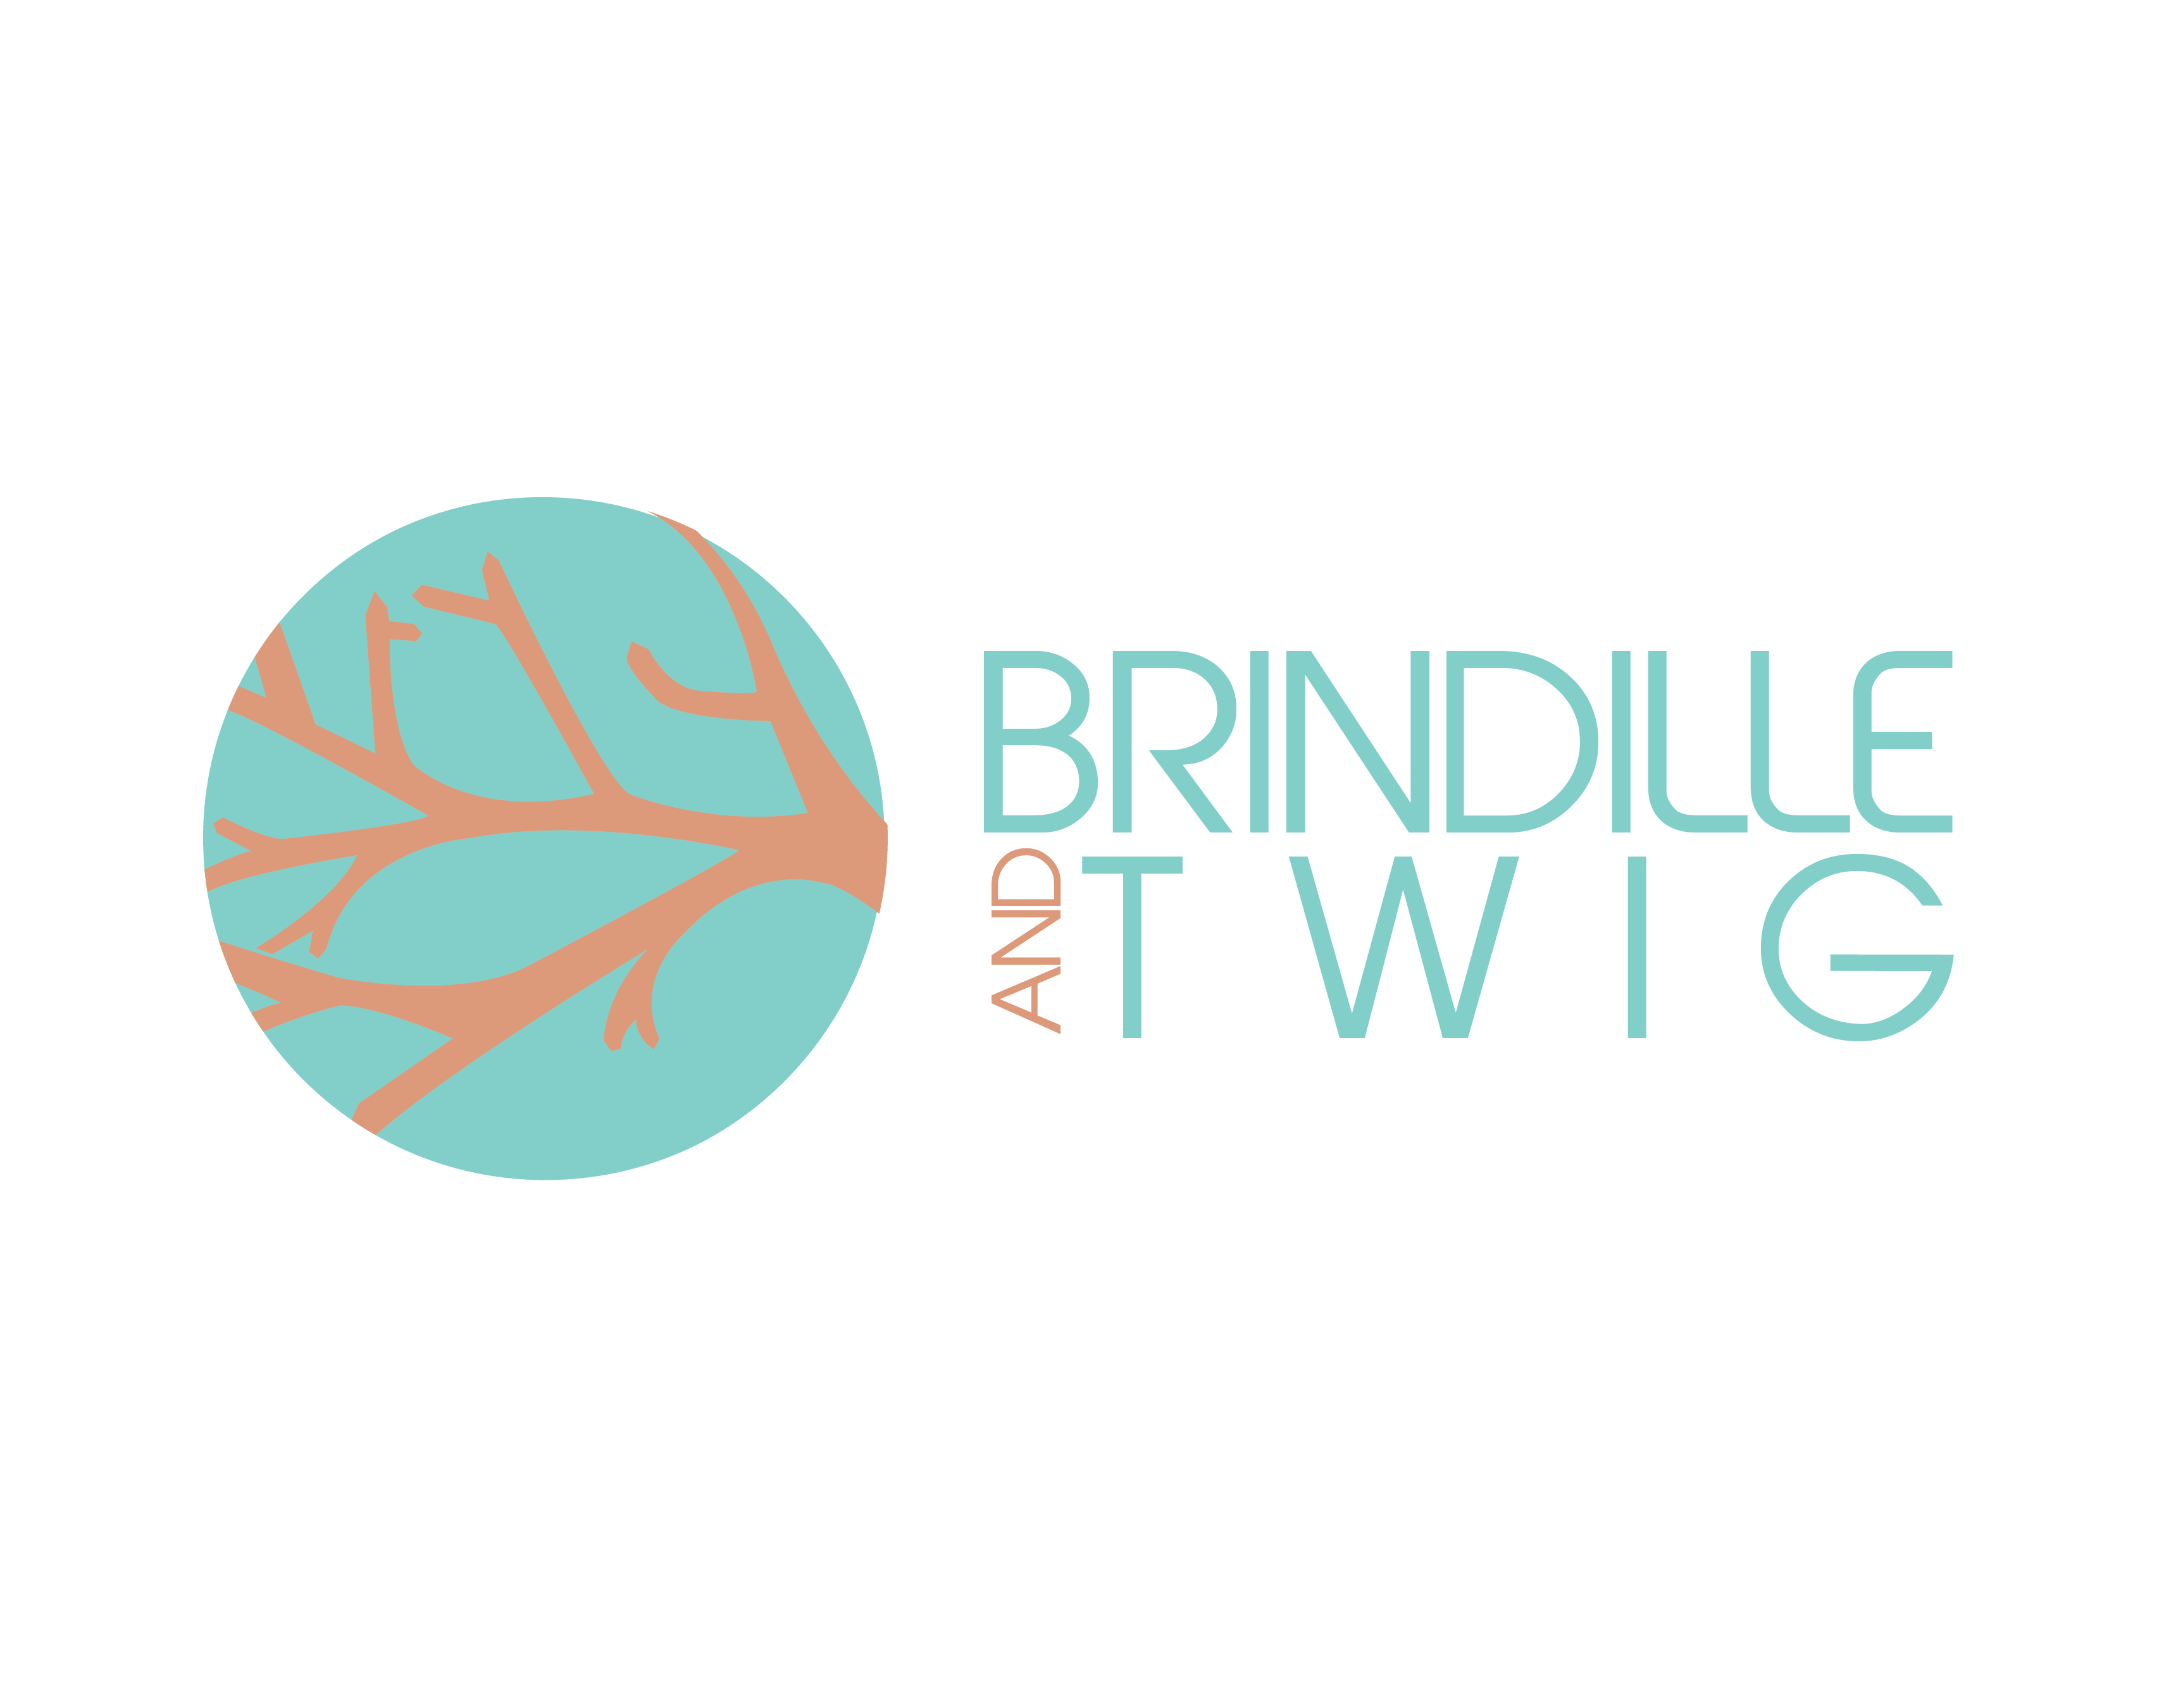 Logo Design by Gretchen Romin - Entry No. 72 in the Logo Design Contest Logo Design for Brindille & Twig.